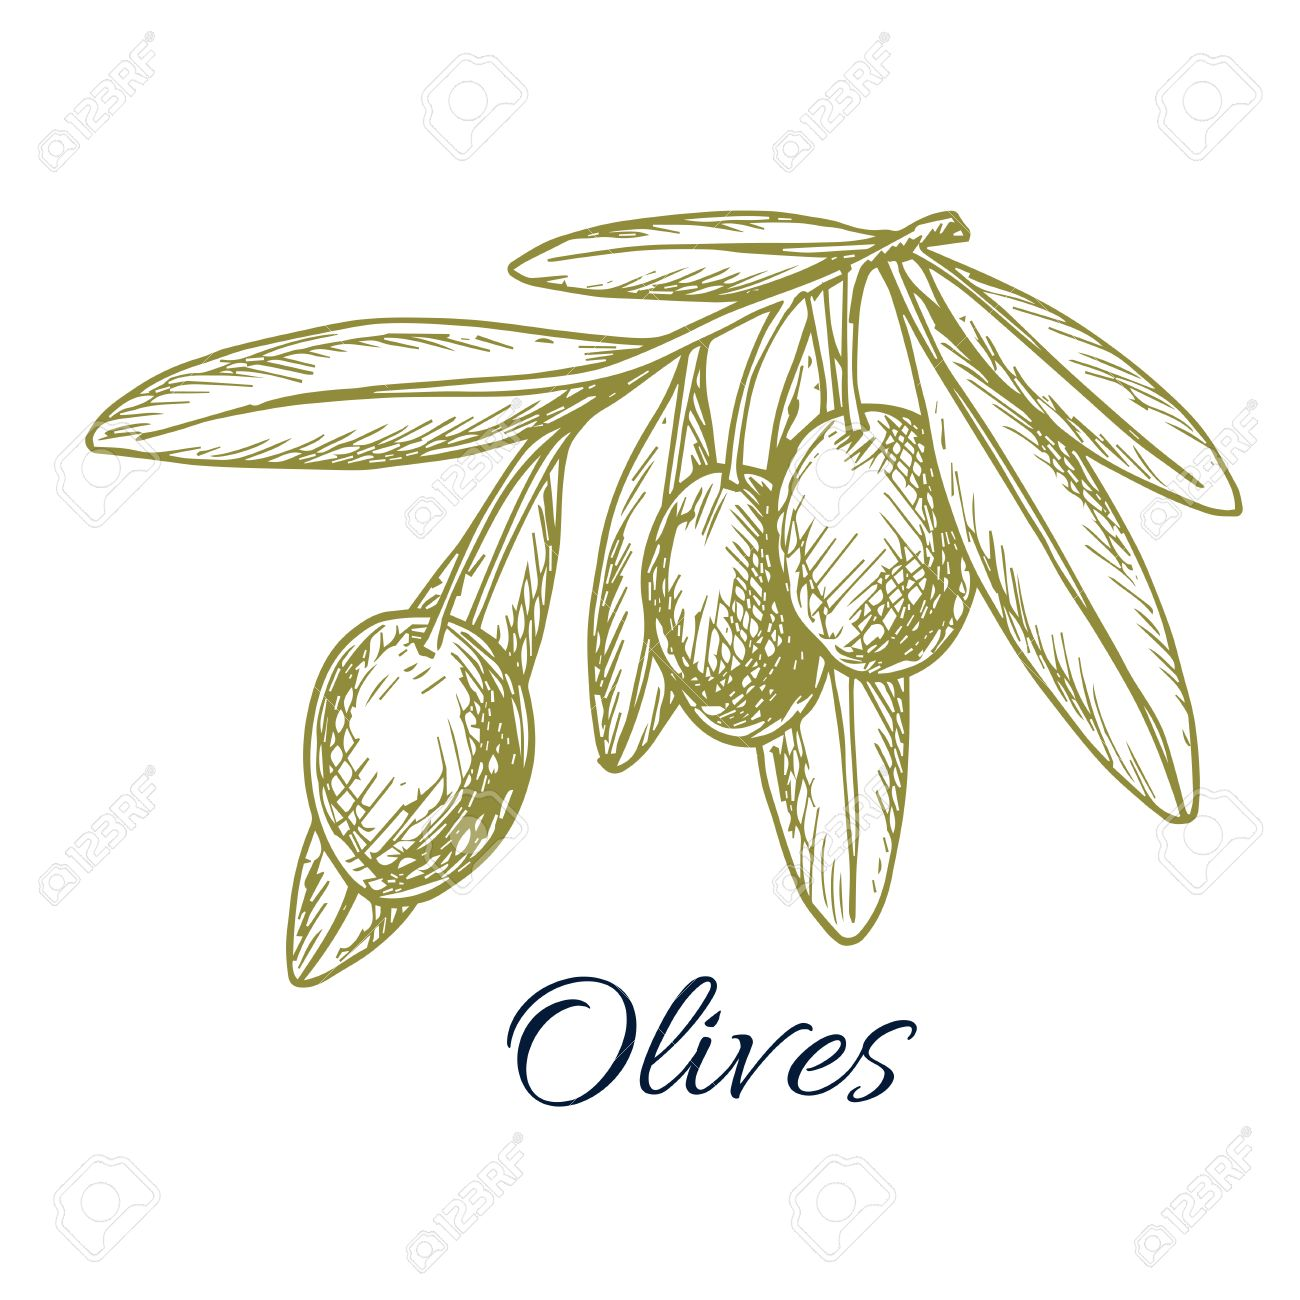 Sketch of green olives vector isolated icon of olive branch with design or symbol for olive oil label vegetarian vegetable food salad ingredient and seasoning olive tree symbol for buycottarizona Choice Image